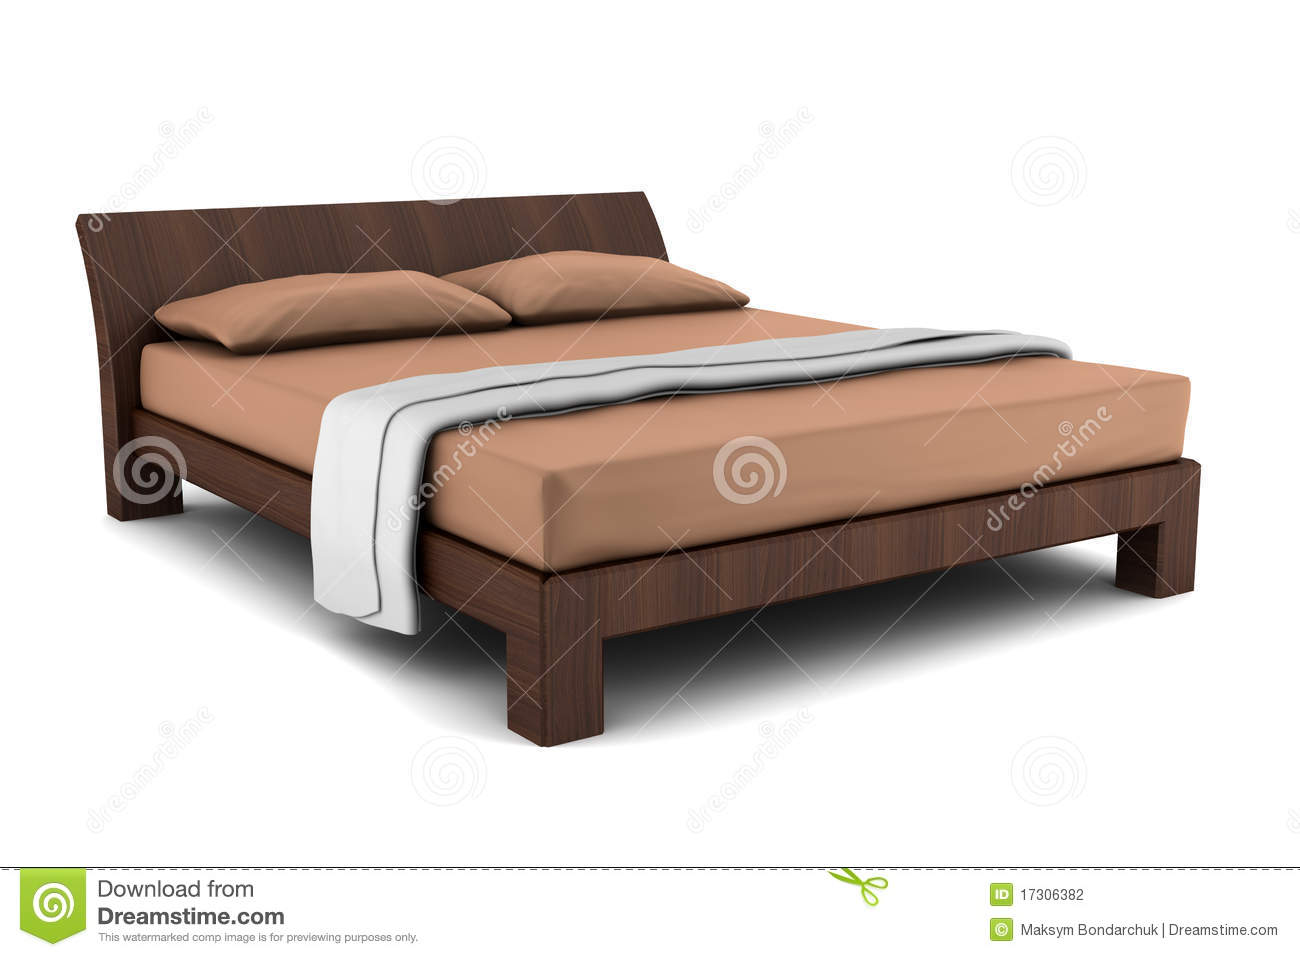 Wooden bed isolated on white background stock photography - Modelos de camas de madera ...